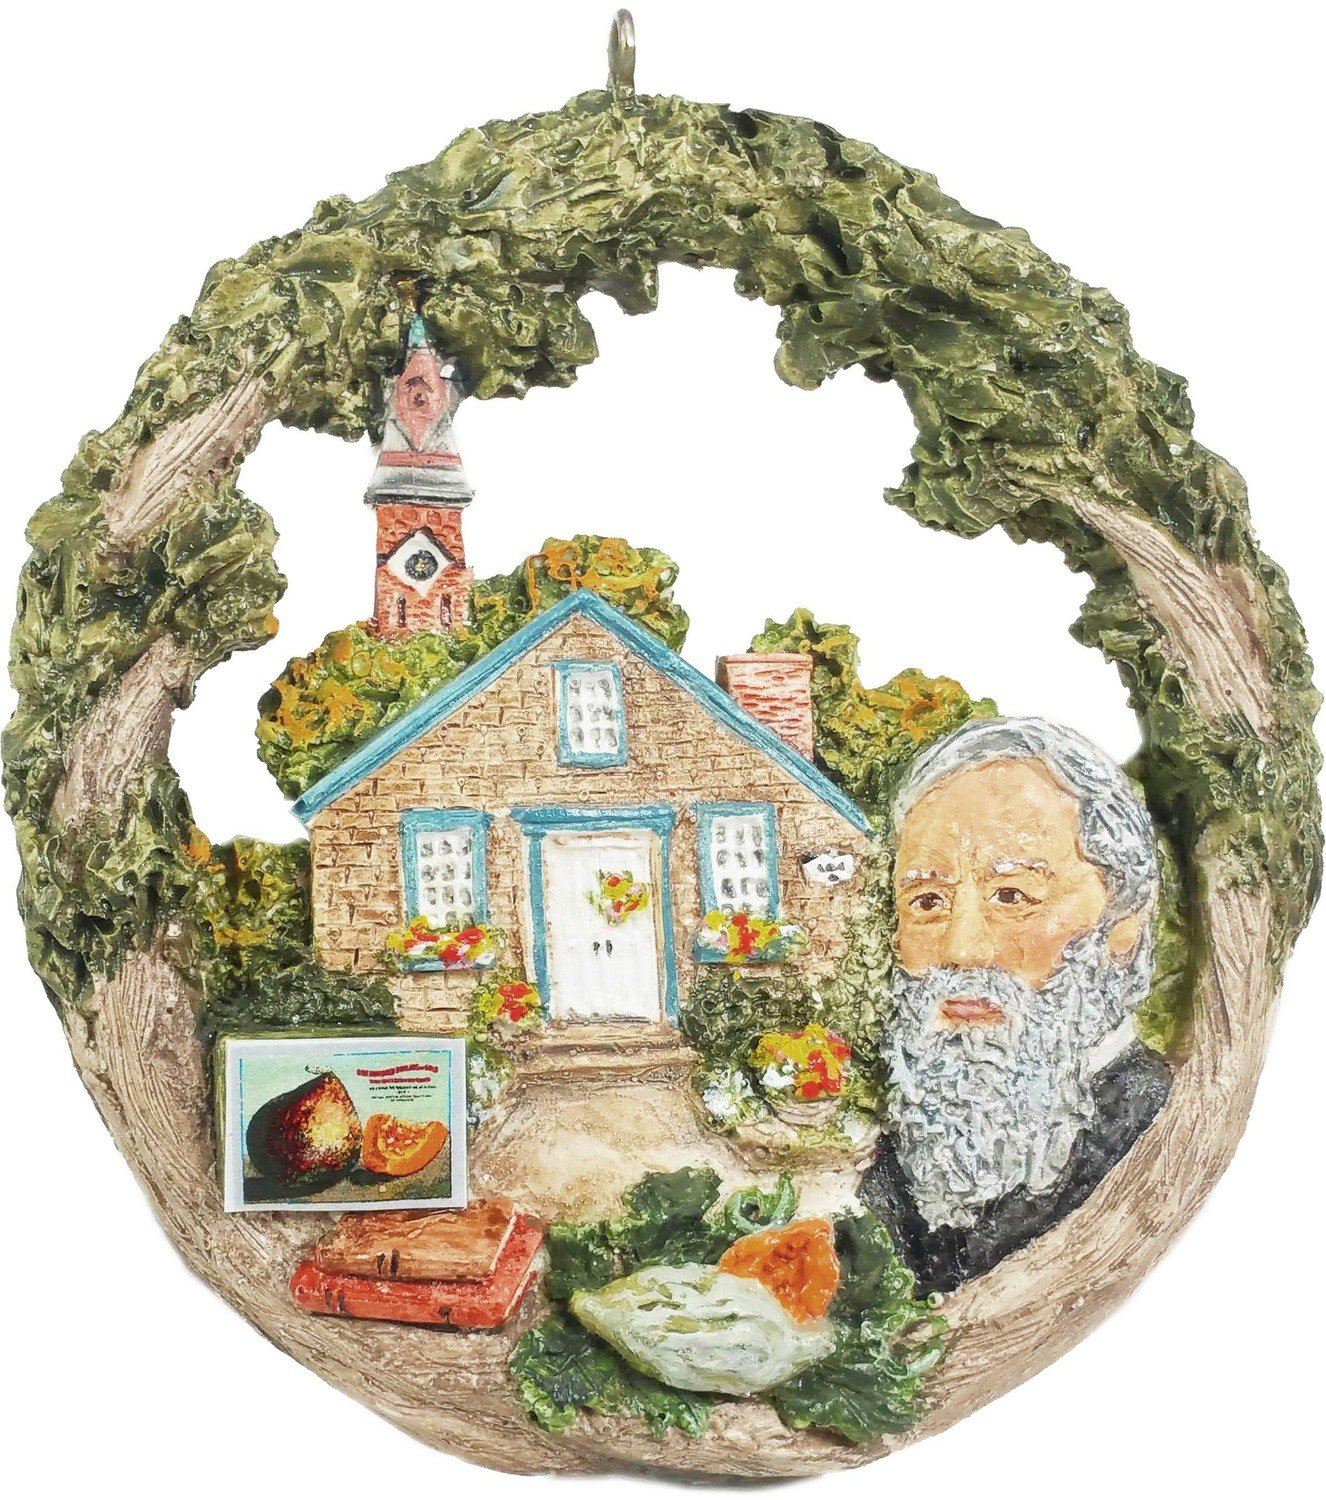 2015 Marblehead Annual Ornament - Celebrating James J.H. Gregory